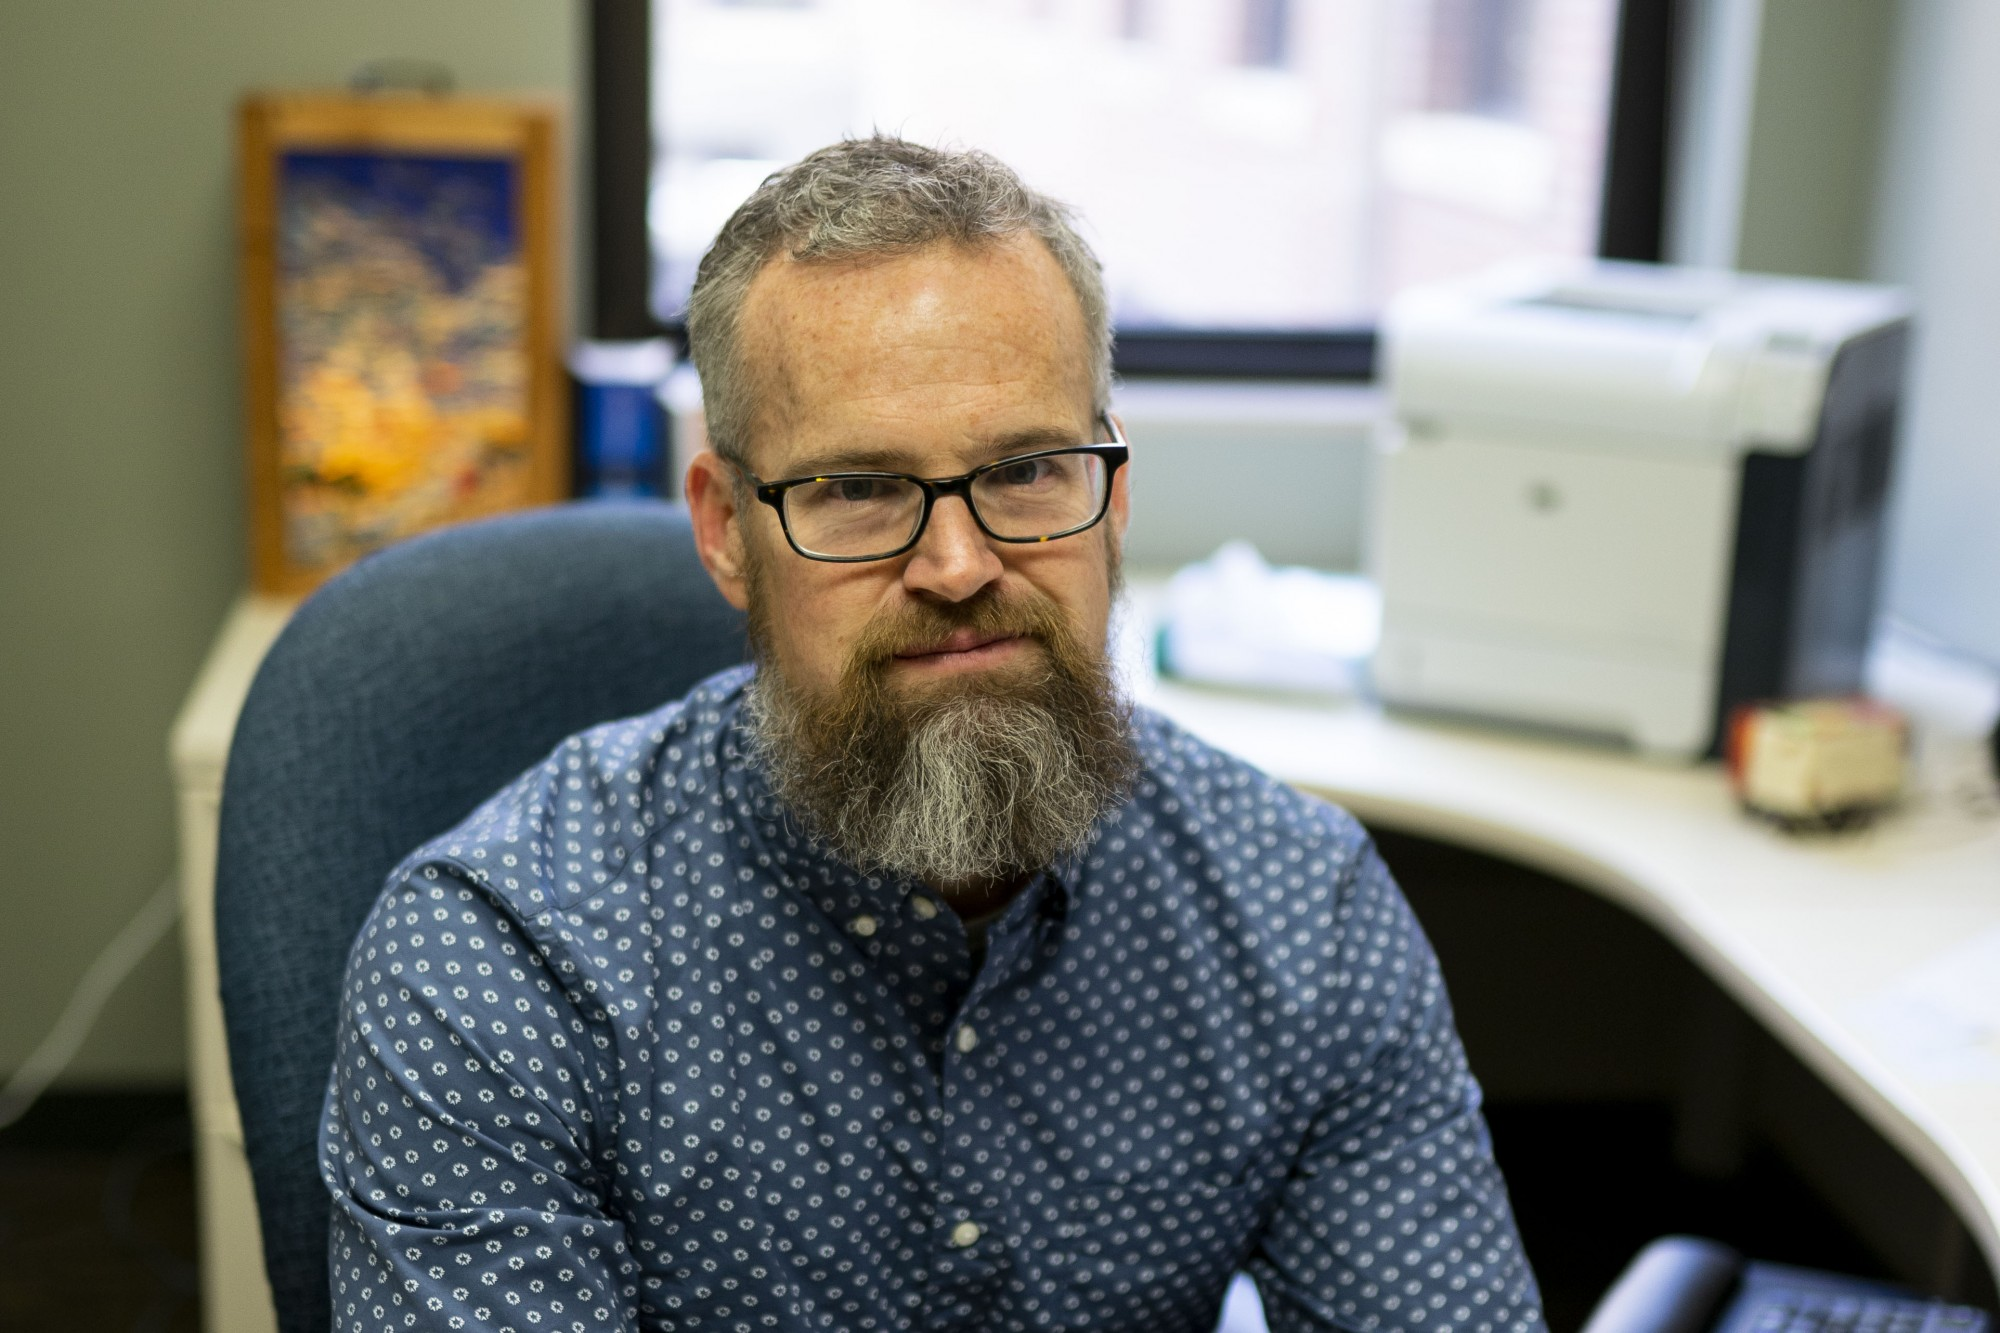 Jude Mikal, whose research is examining the relationship between quantitative and qualitative data, poses for a portrait in his office on Tuesday, Feb. 4. (Parker Johnson / Minnesota Daily)